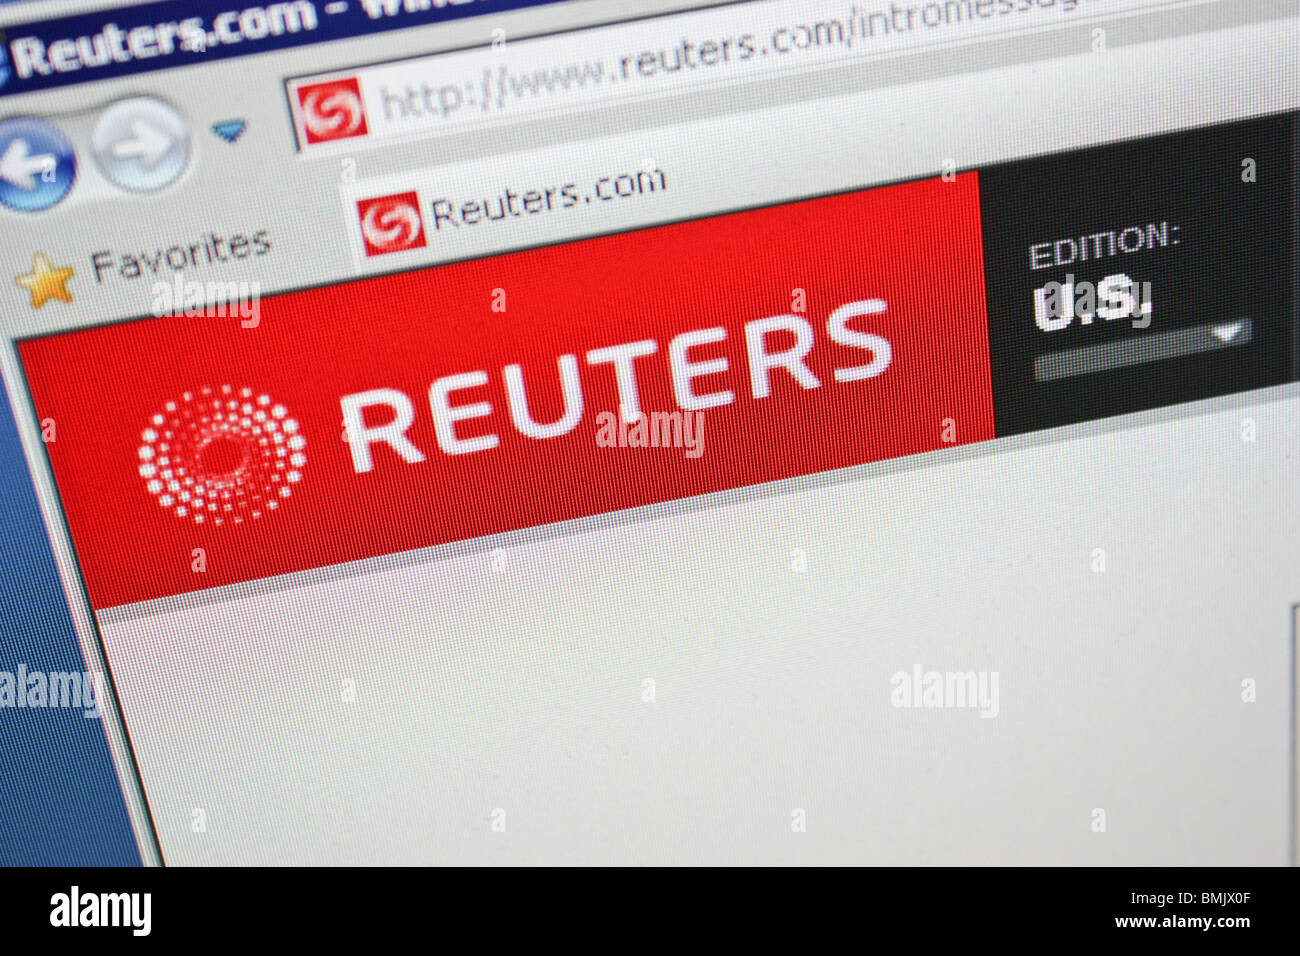 reuters US online website global headline news - Stock Image